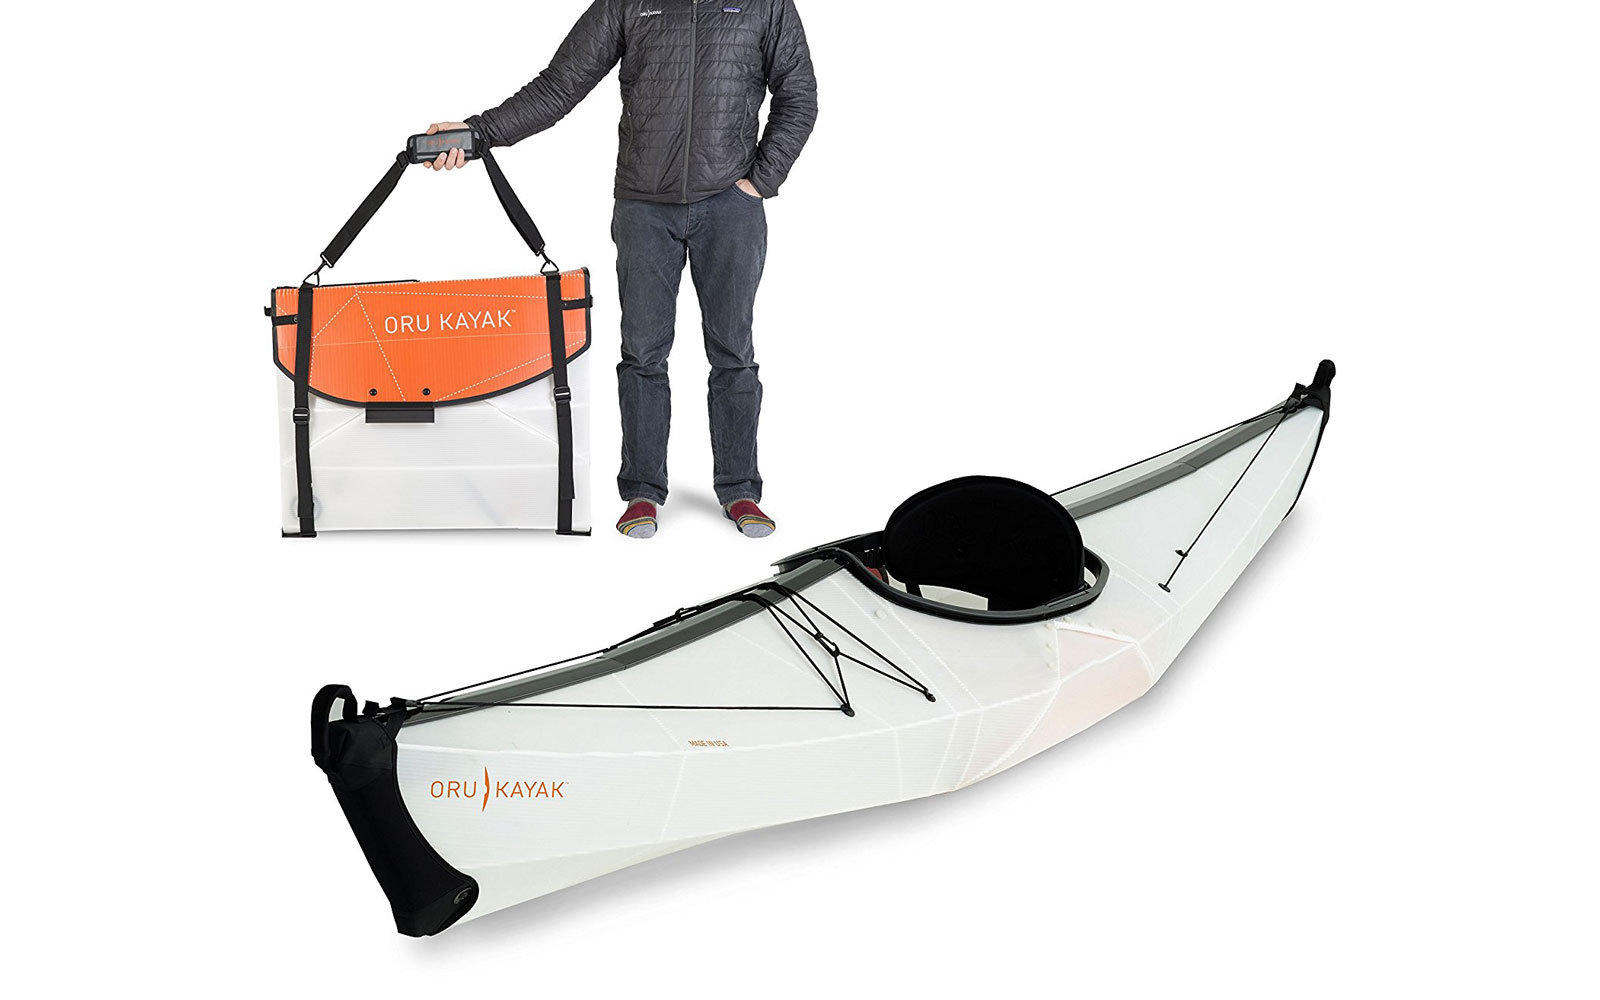 Gifts For Adventure Travel